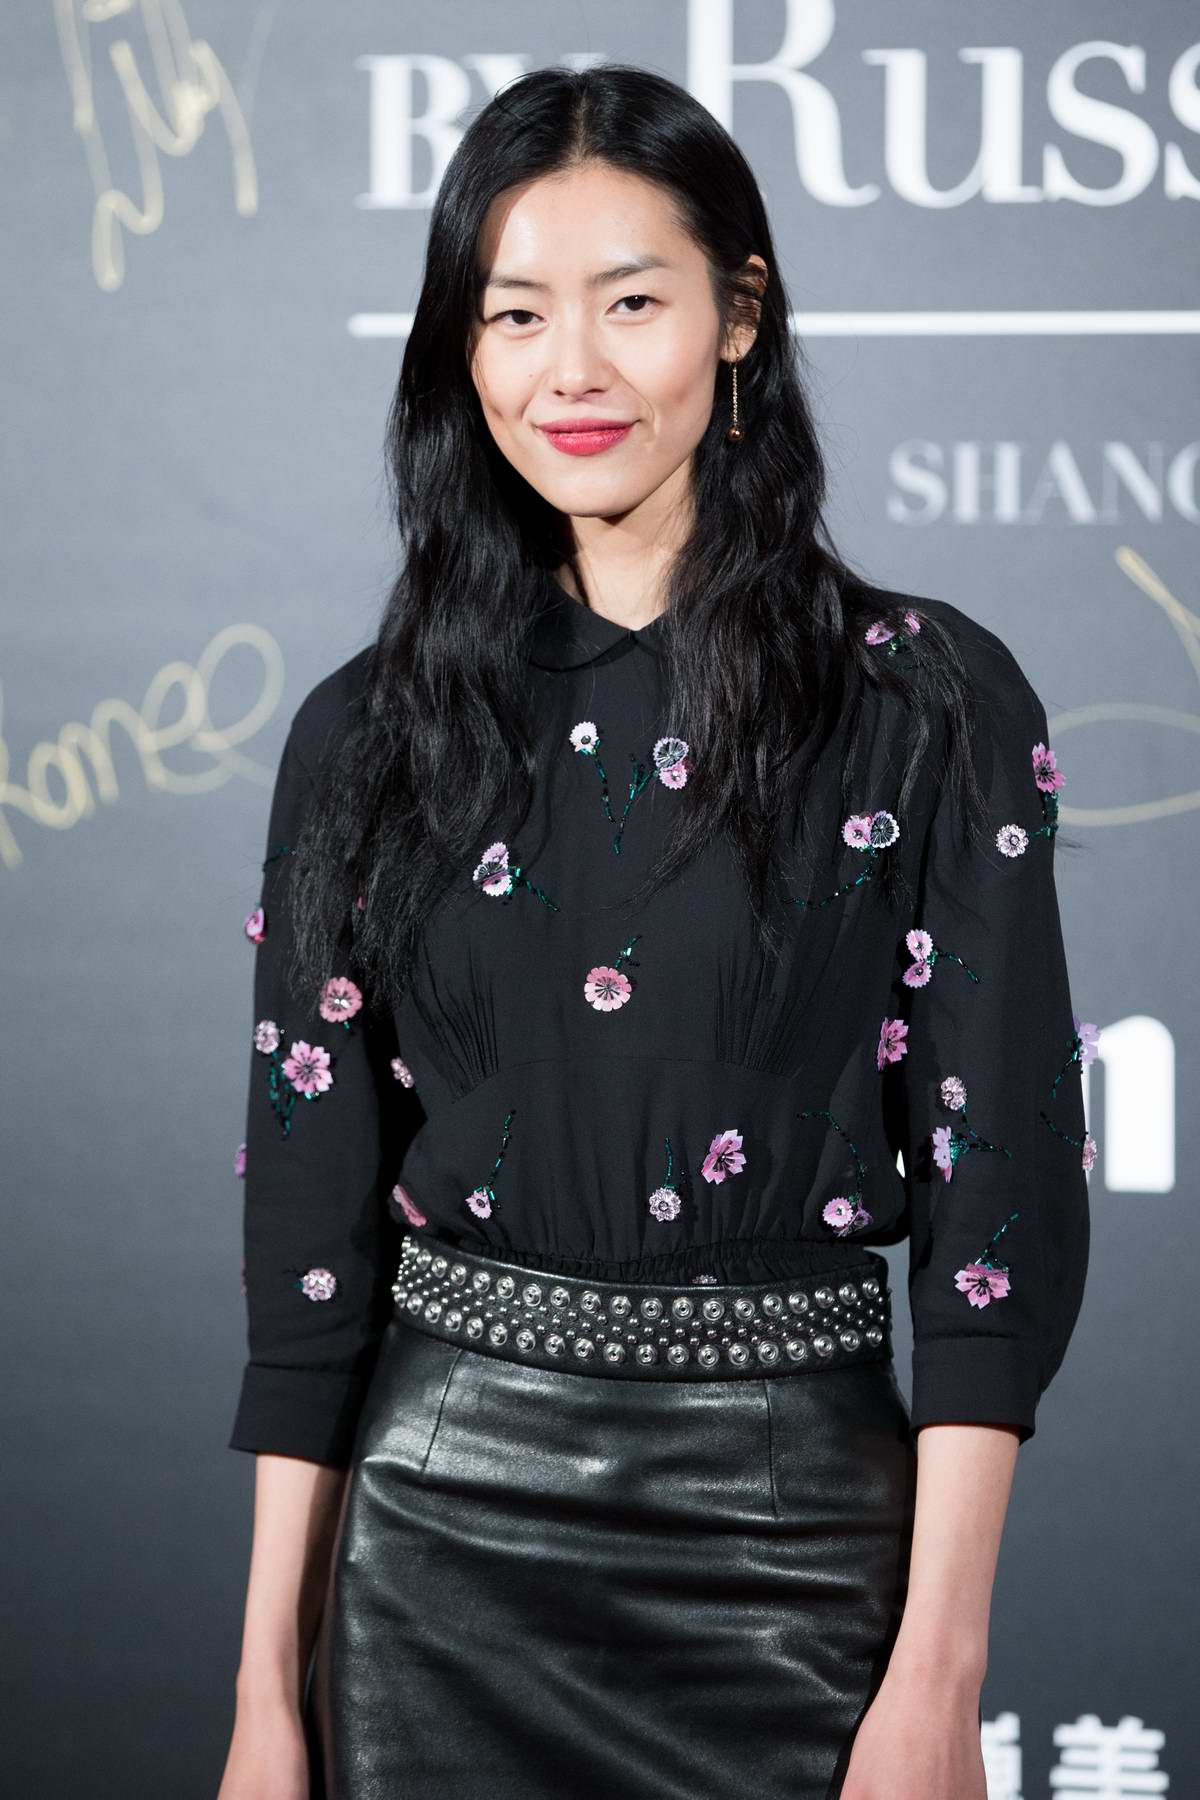 Liu Wen at Mercedes-Benz 'Backstage Secrets' by Russell James' book launch and Shanghai exhibition opening party in Shanghai, China